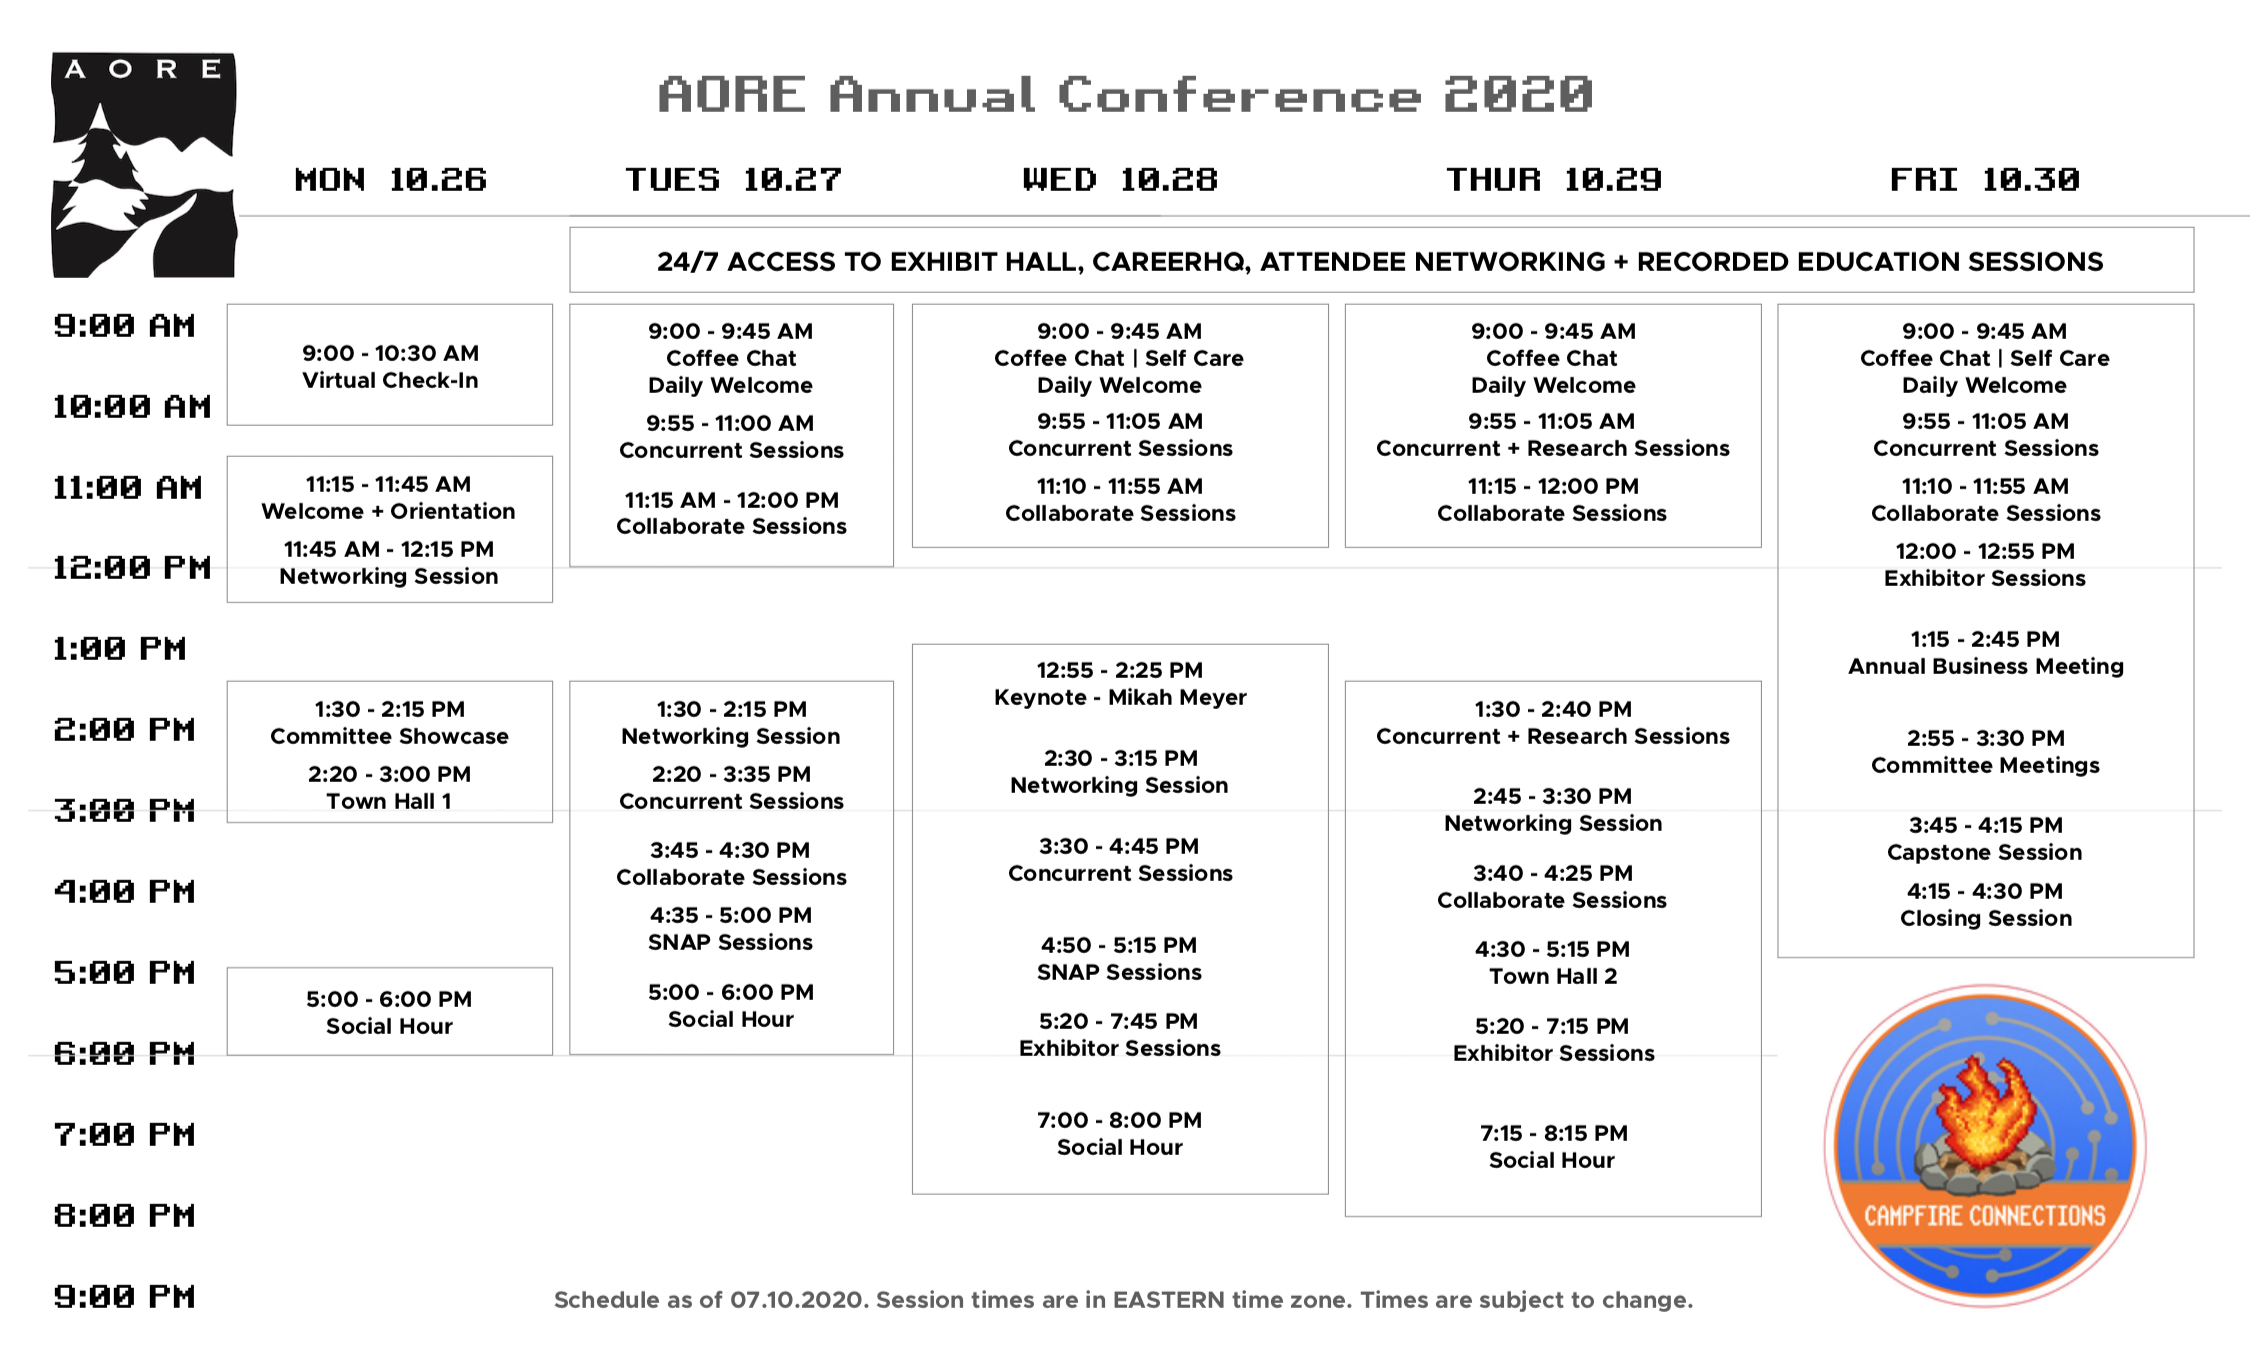 AORE Annual Conference 2020 Schedule At-a-Glance